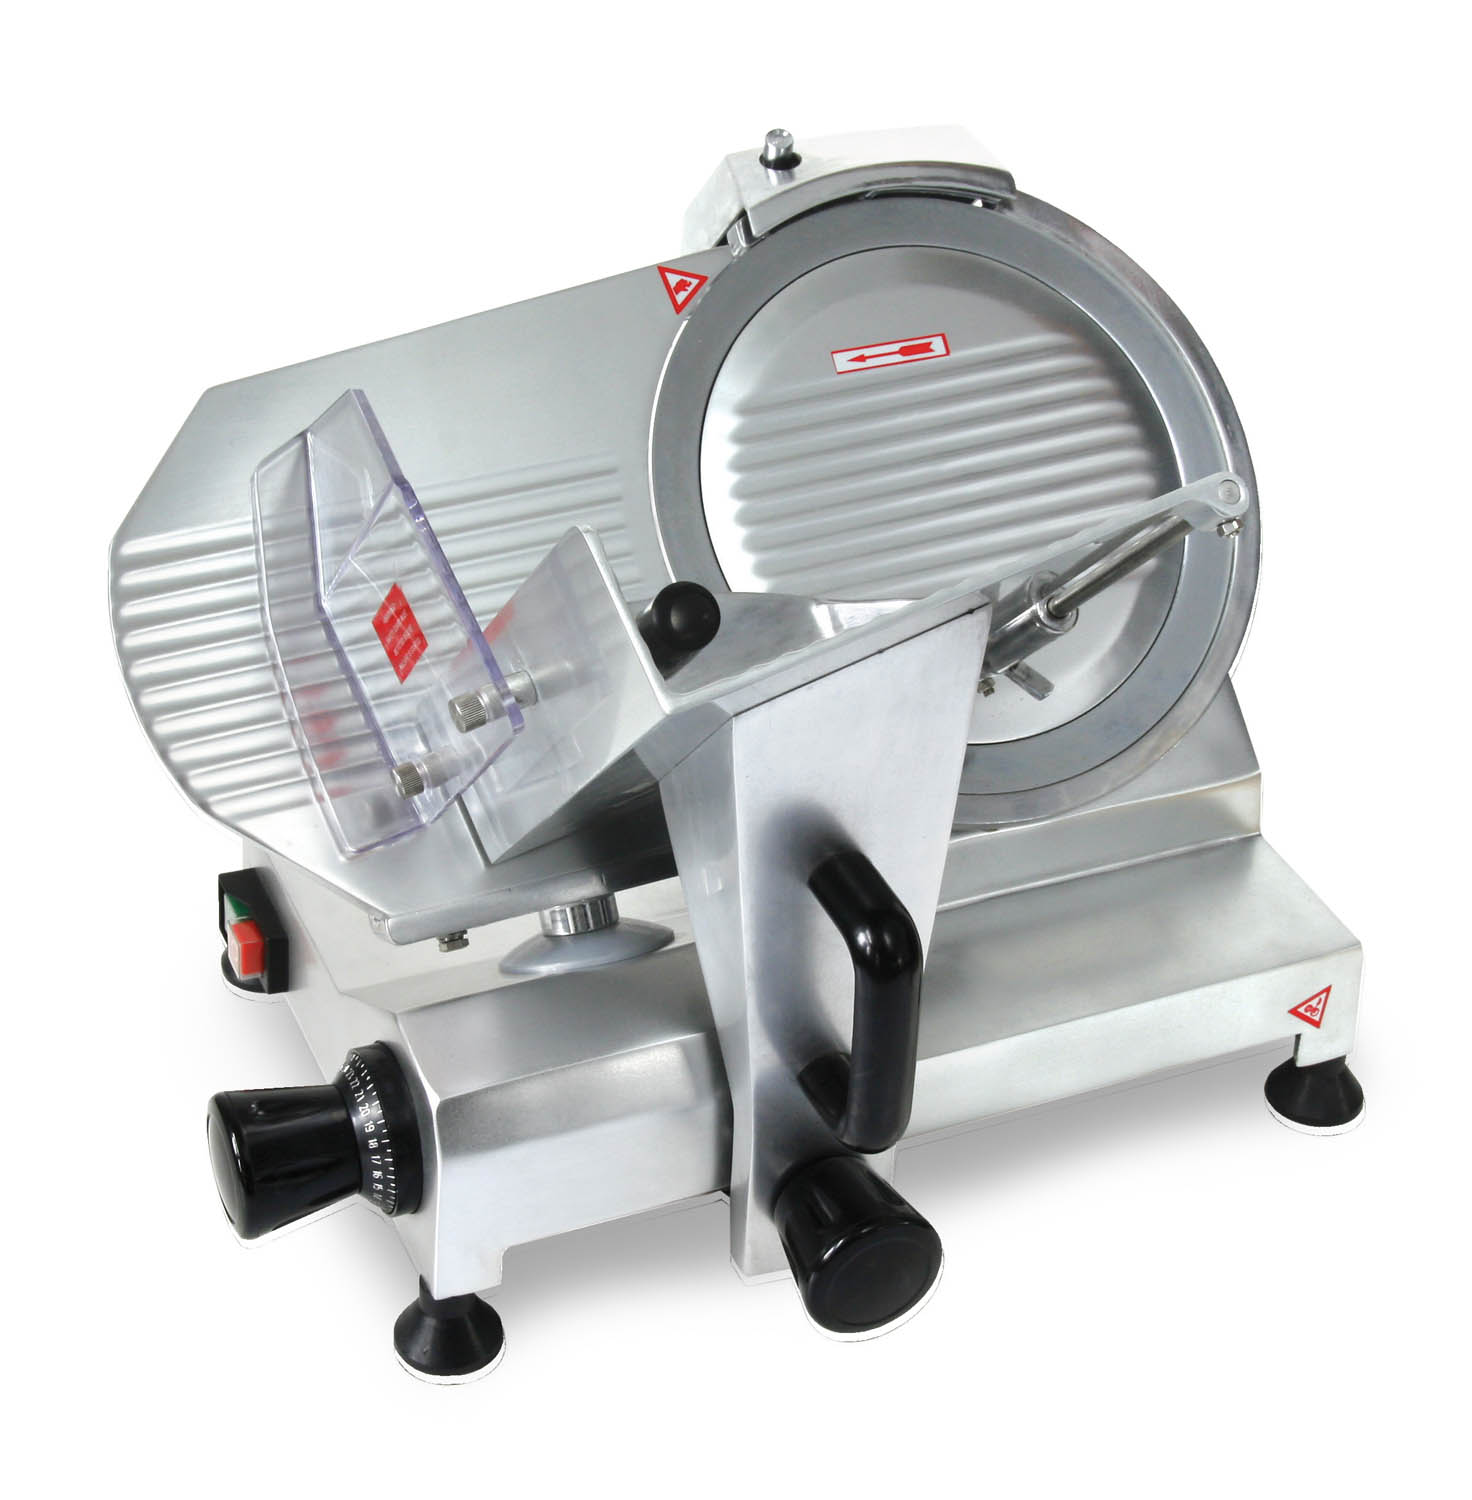 OMCAN Economy 10in Commercial Deli Meat Slicer